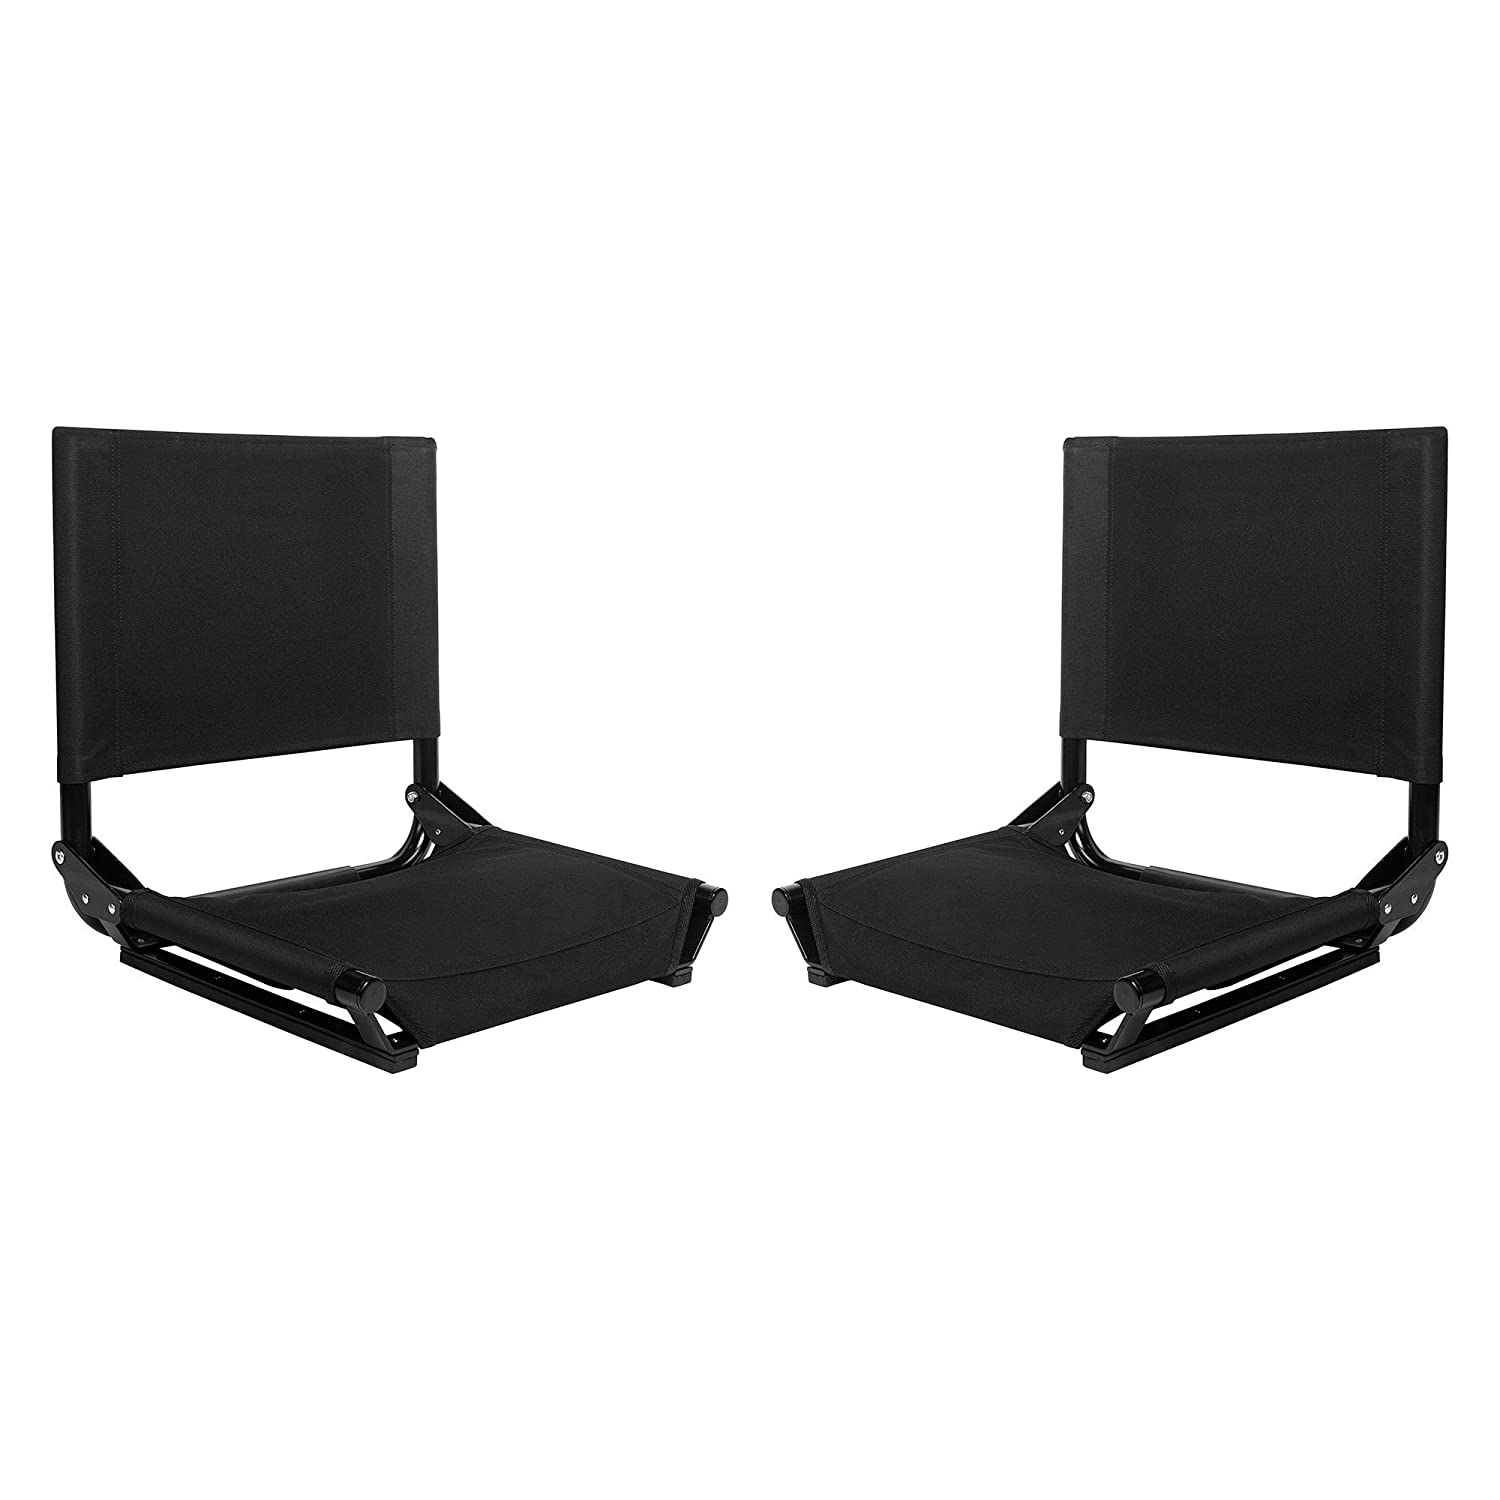 Stadium Seat by Cascade Mountain Tech Pack of 2